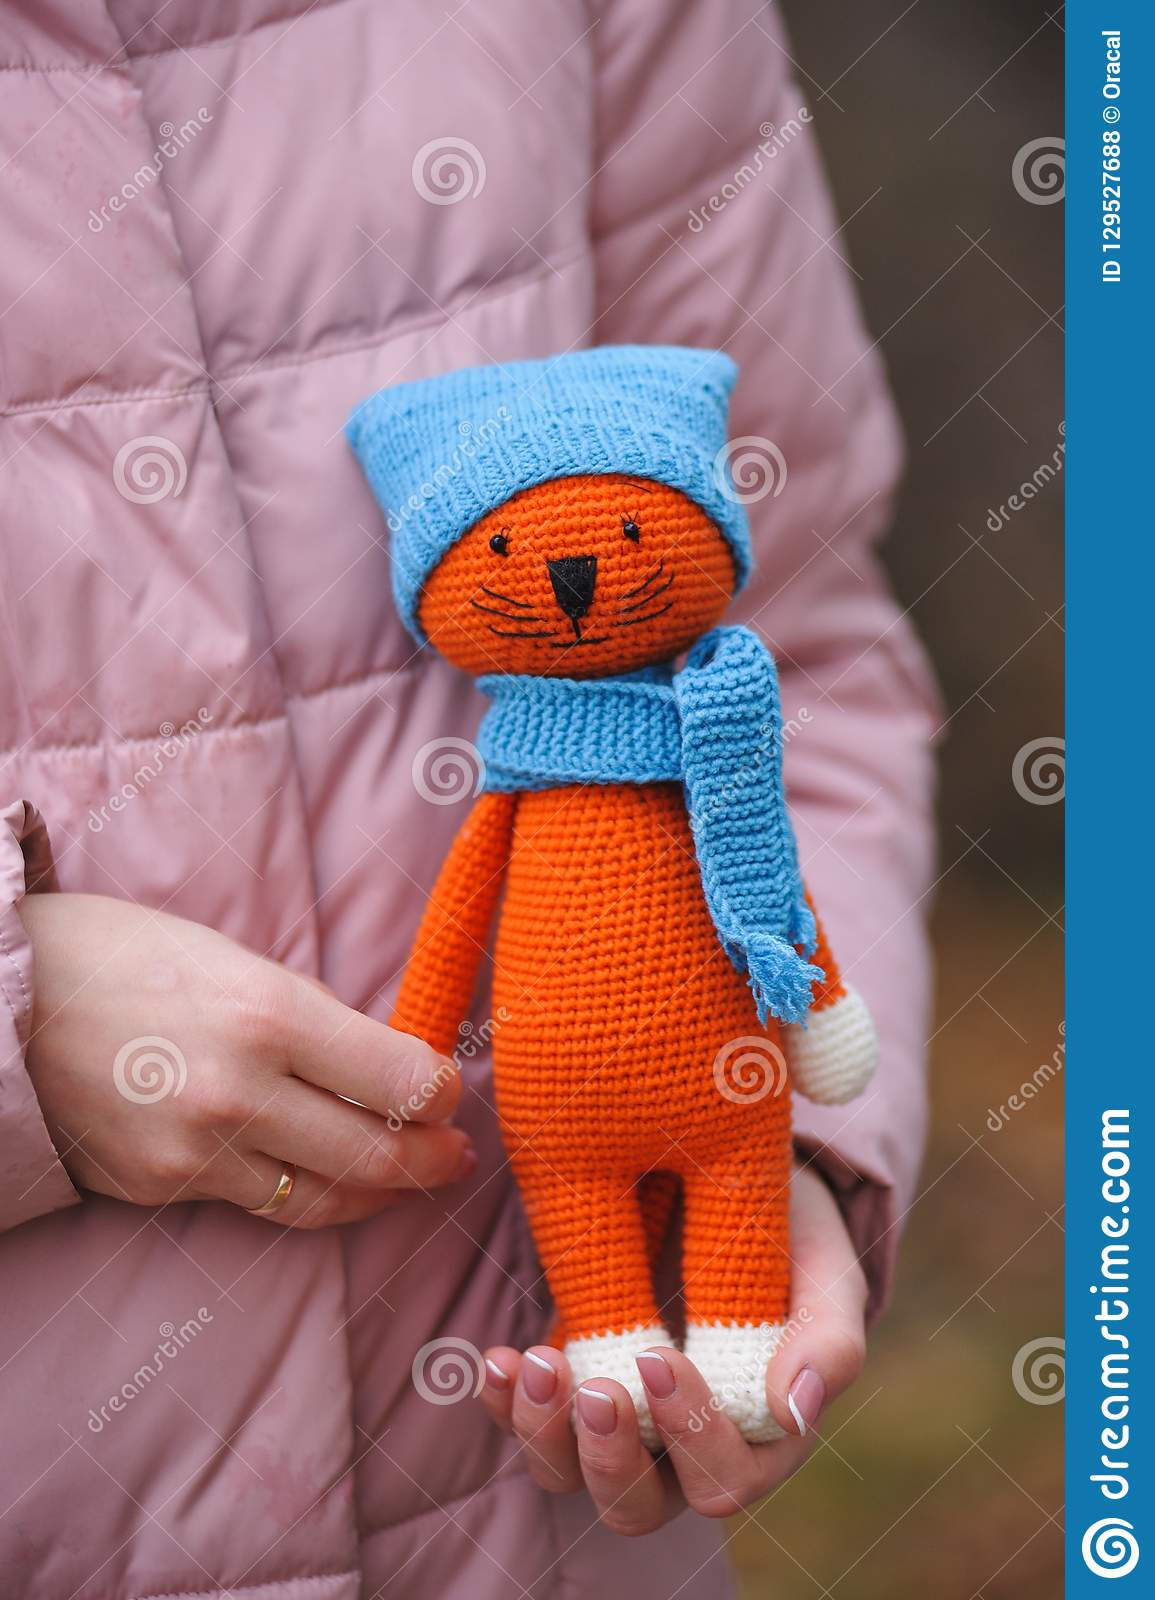 Amigurumi Cat in Hat Free Crochet Pattern - Crochet.msa.plus | 1600x1155